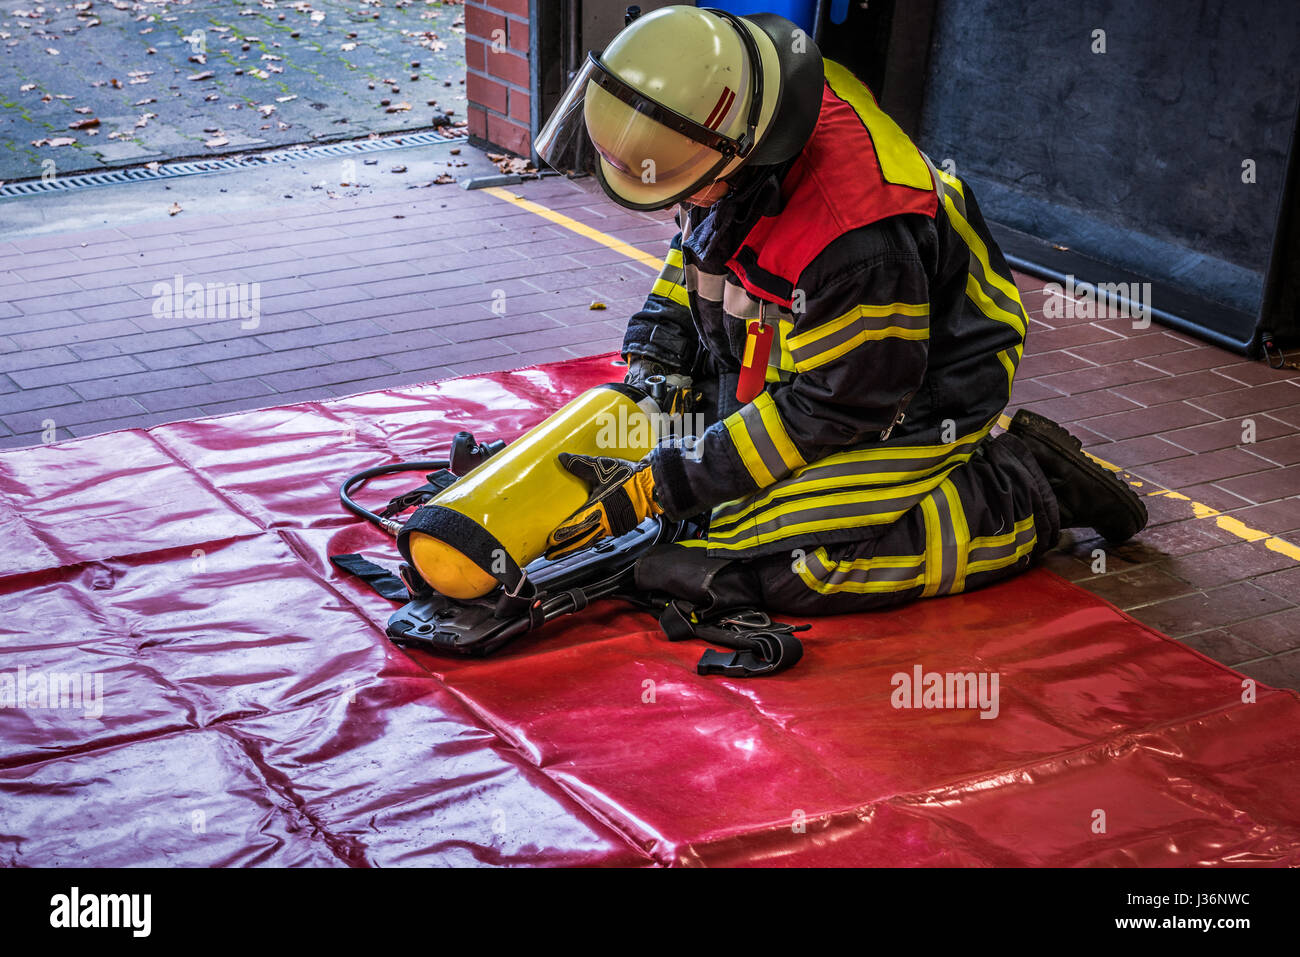 Firefighter in action with oxygen tank - HDR - Stock Image